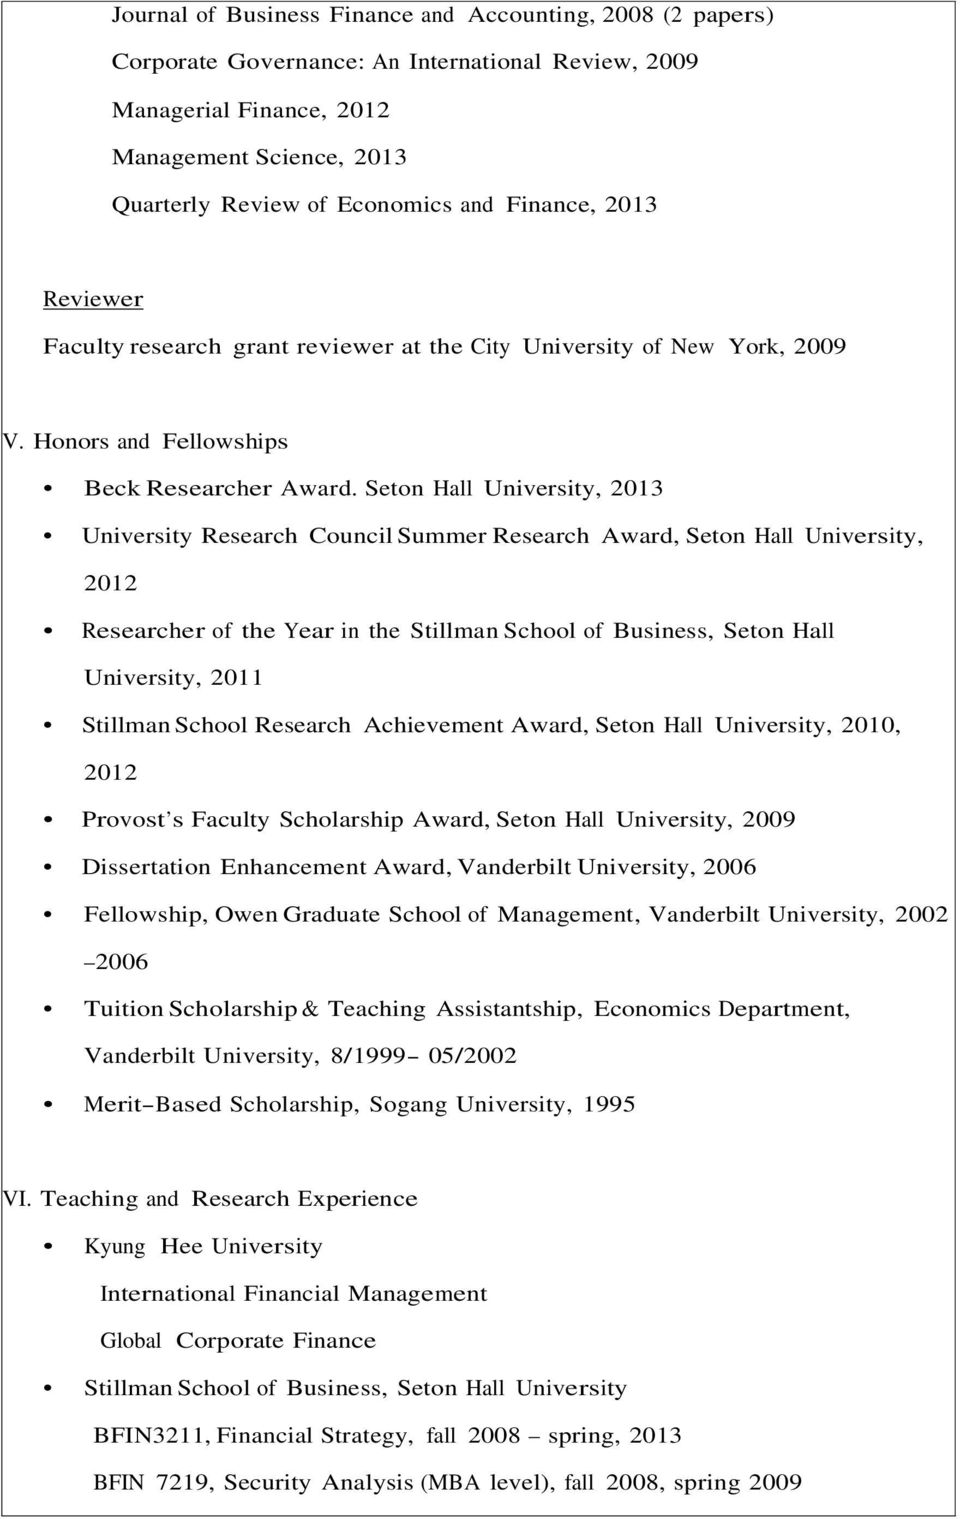 Seton Hall University, 2013 University Research Council Summer Research Award, Seton Hall University, 2012 Researcher of the Year in the Stillman School of Business, Seton Hall University, 2011